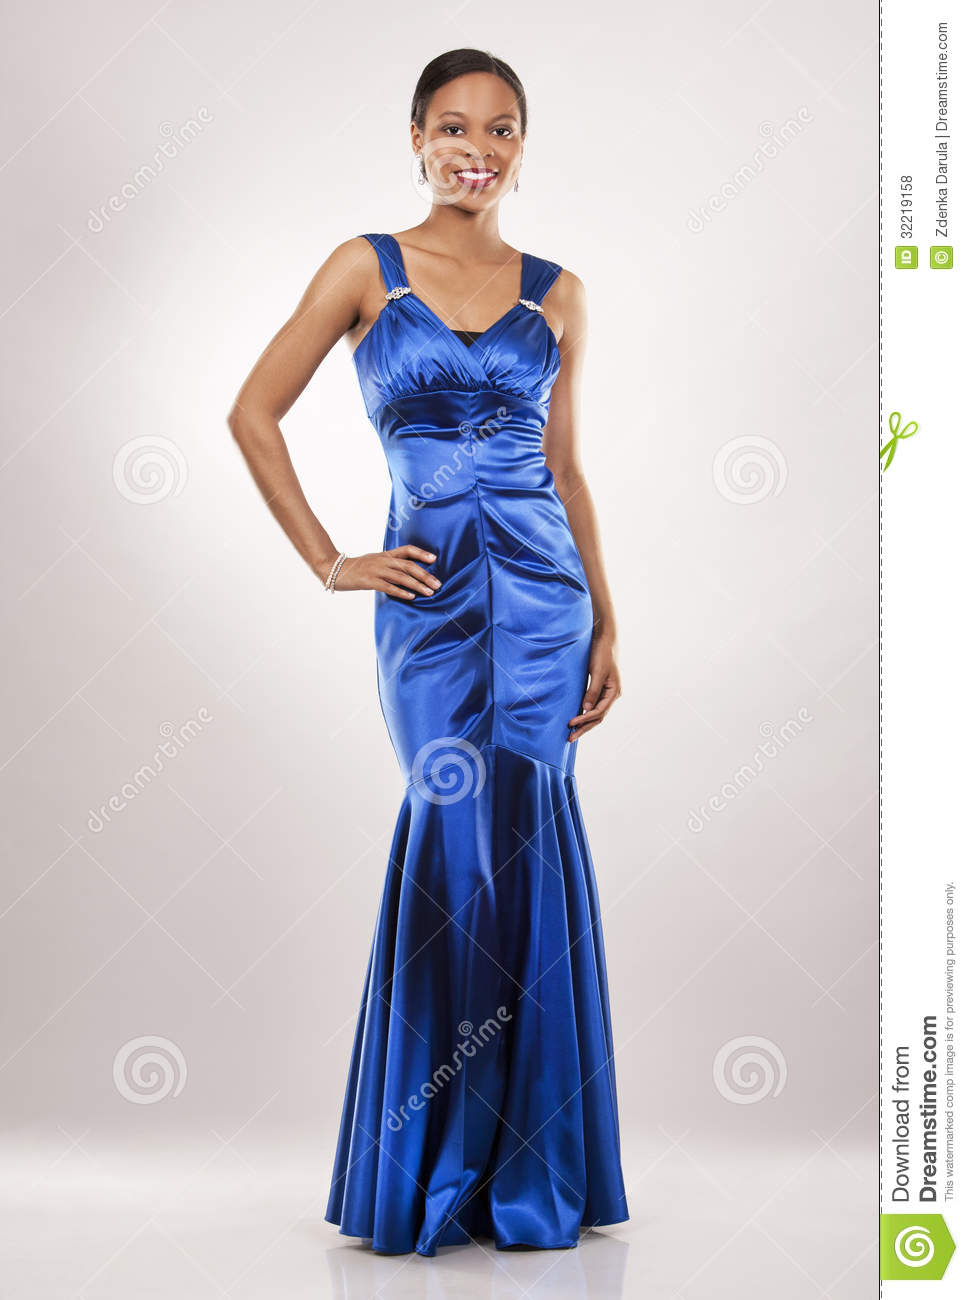 Luxury Pretty Black Woman In Blue Dress Looking Thoughtful With A Yellow